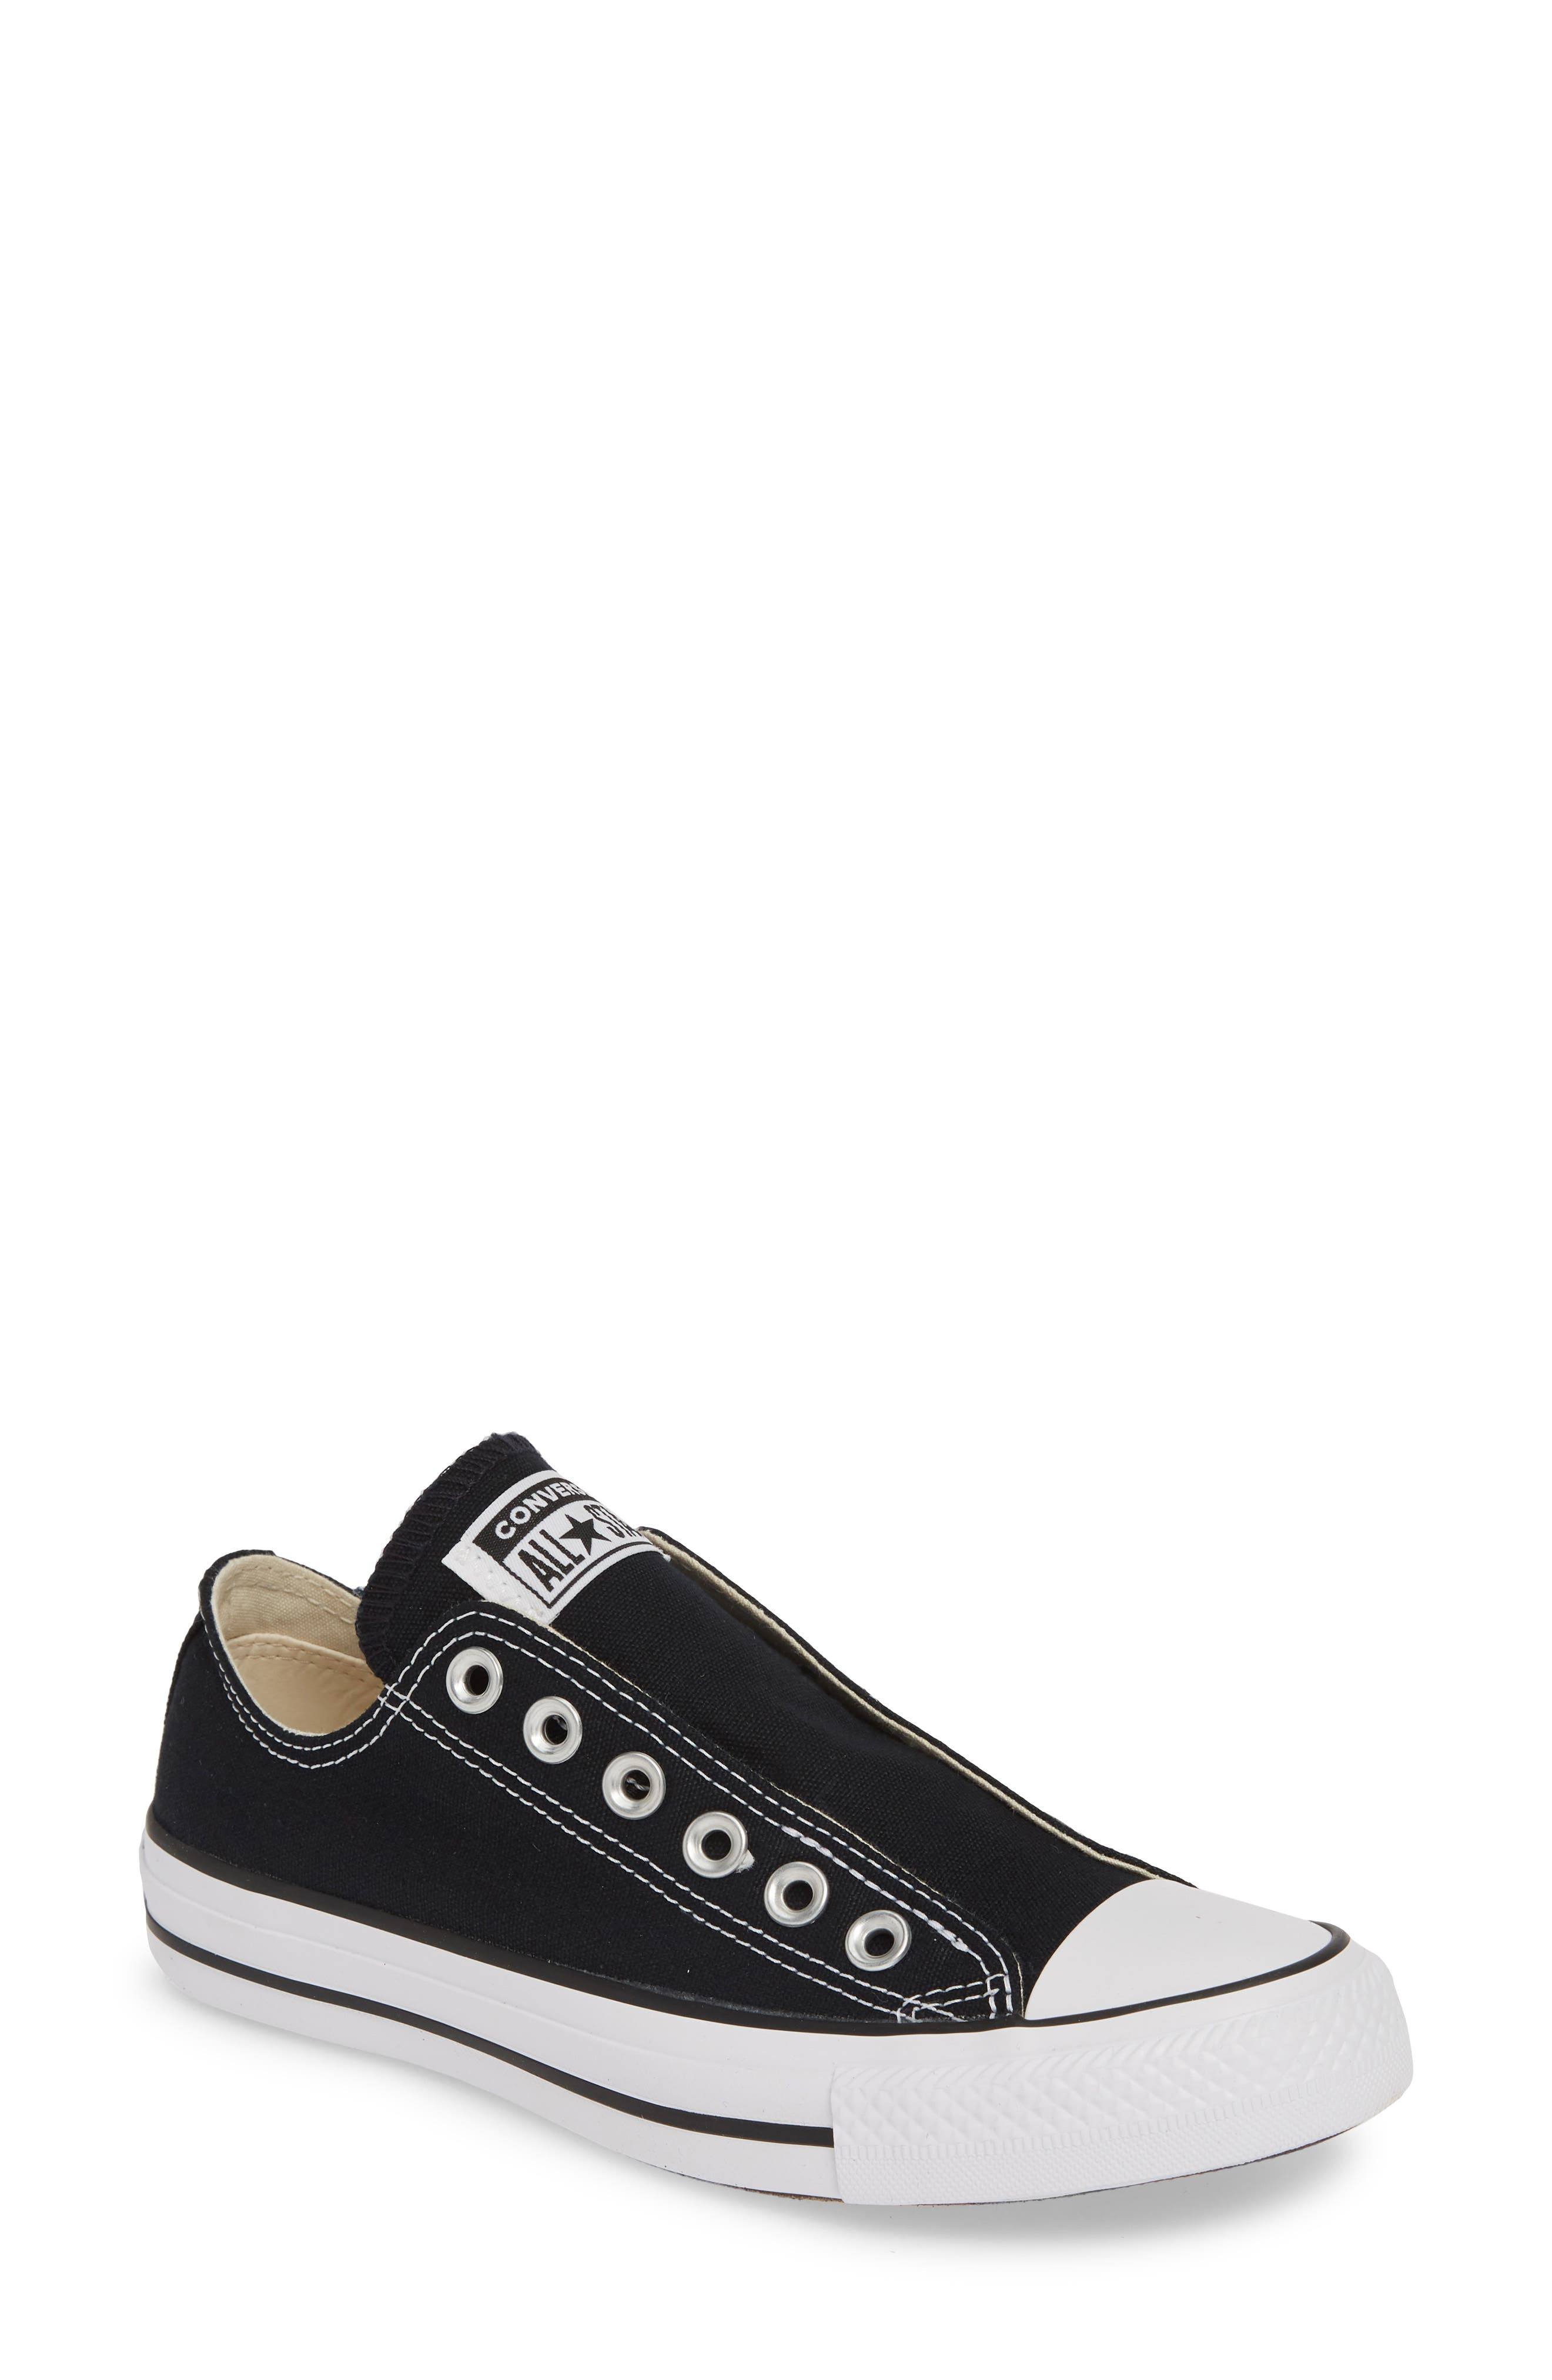 Converse Chuck Taylor All Star Laceless Low Top Sneaker- Black